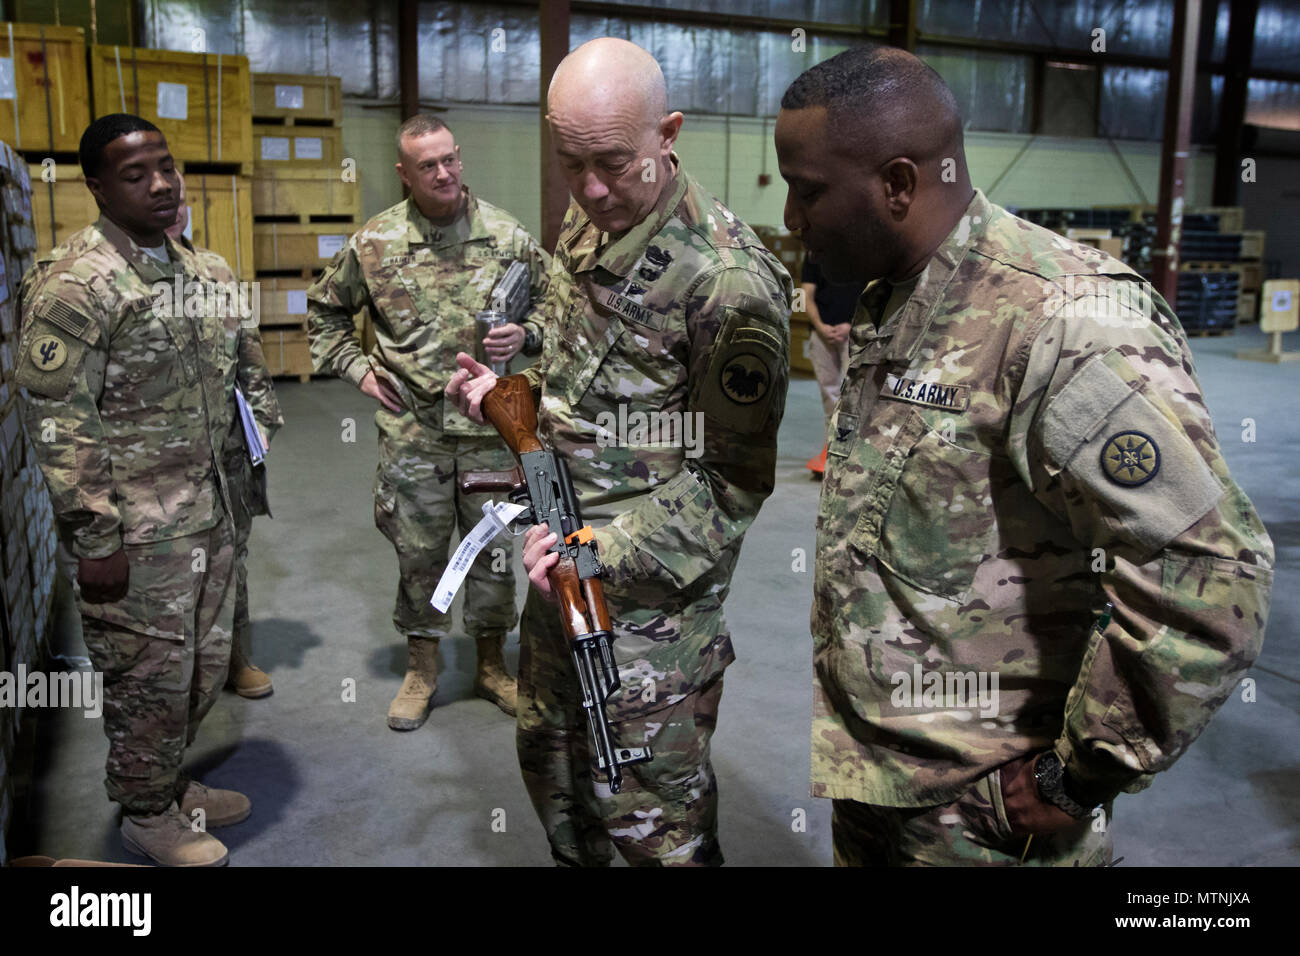 U.S. Army Reserve Commanding General, Lt. Gen. Charles D. Luckey, inspects an AK-47 rifle during a tour of the Iraq Train and Equipment Fund (ITEF) warehouse at Camp Arifjan, Kuwait, Jan. 4, 2017. (U.S. Army Photo by Staff Sgt. Dalton Smith) - Stock Image